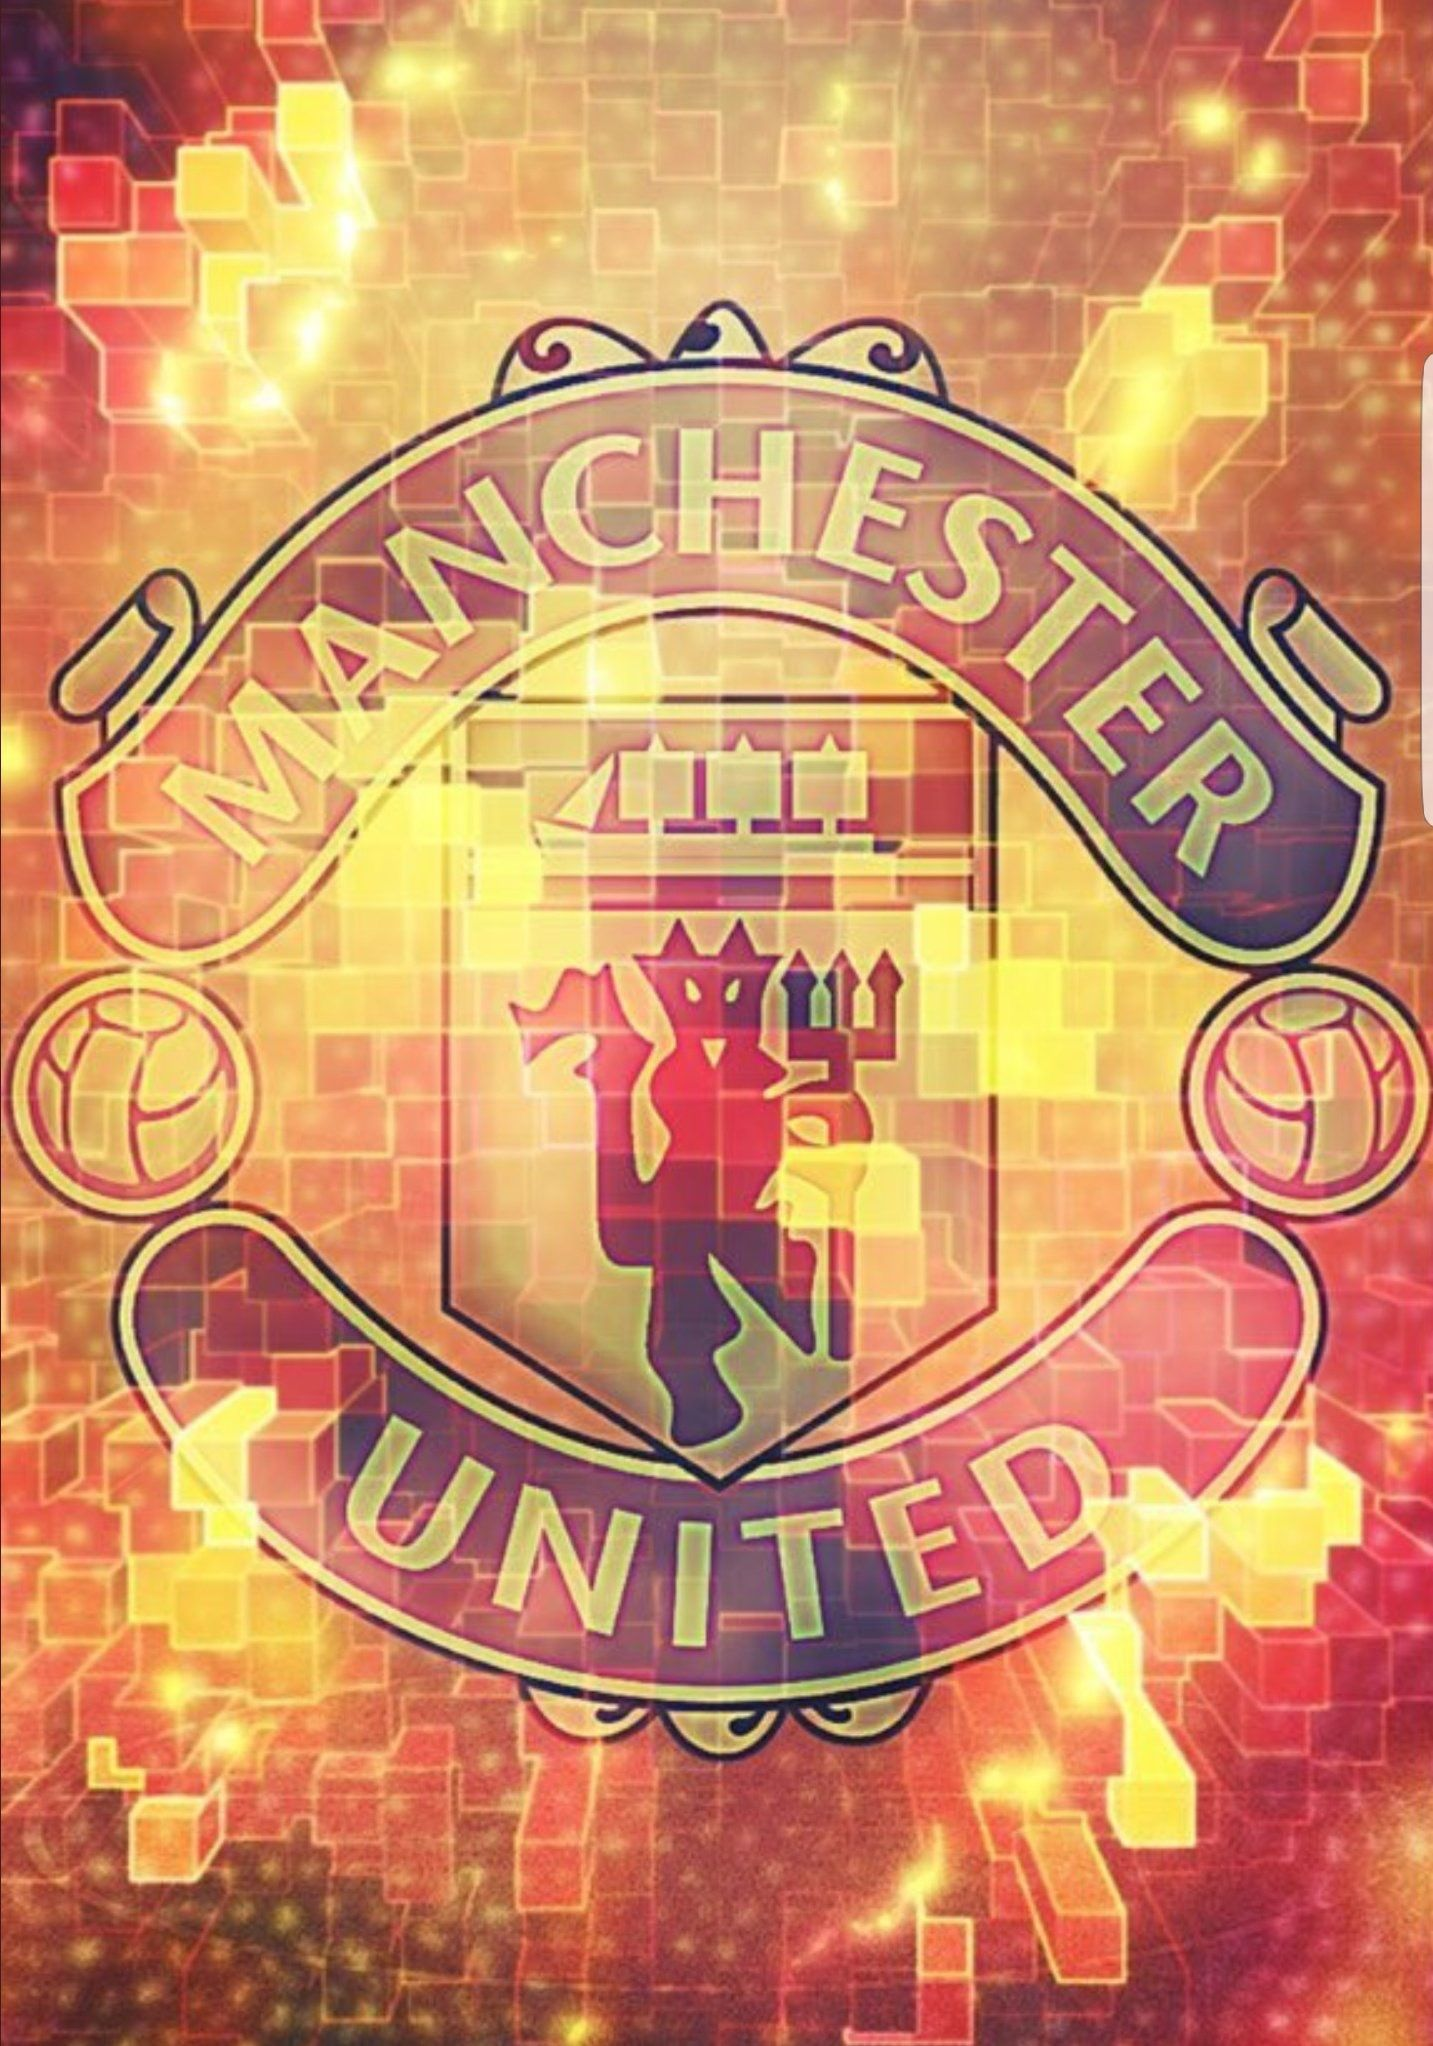 Man Utd Wallpaper Manchester United Wallpaper Manchester